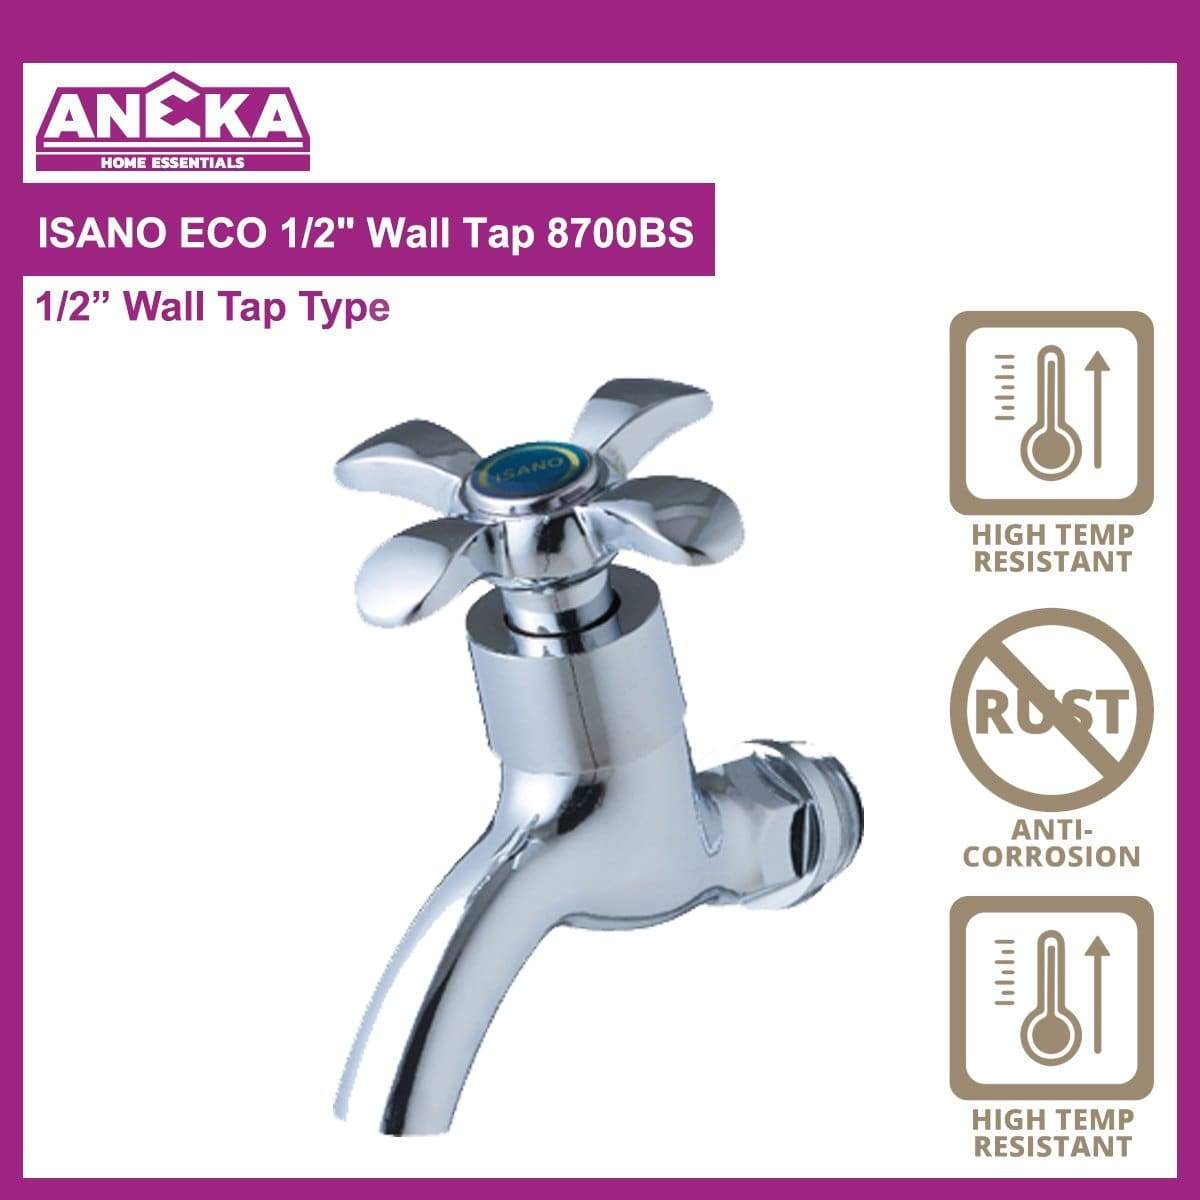 "ISANO ECO 1/2"" Wall Tap 8700BS"